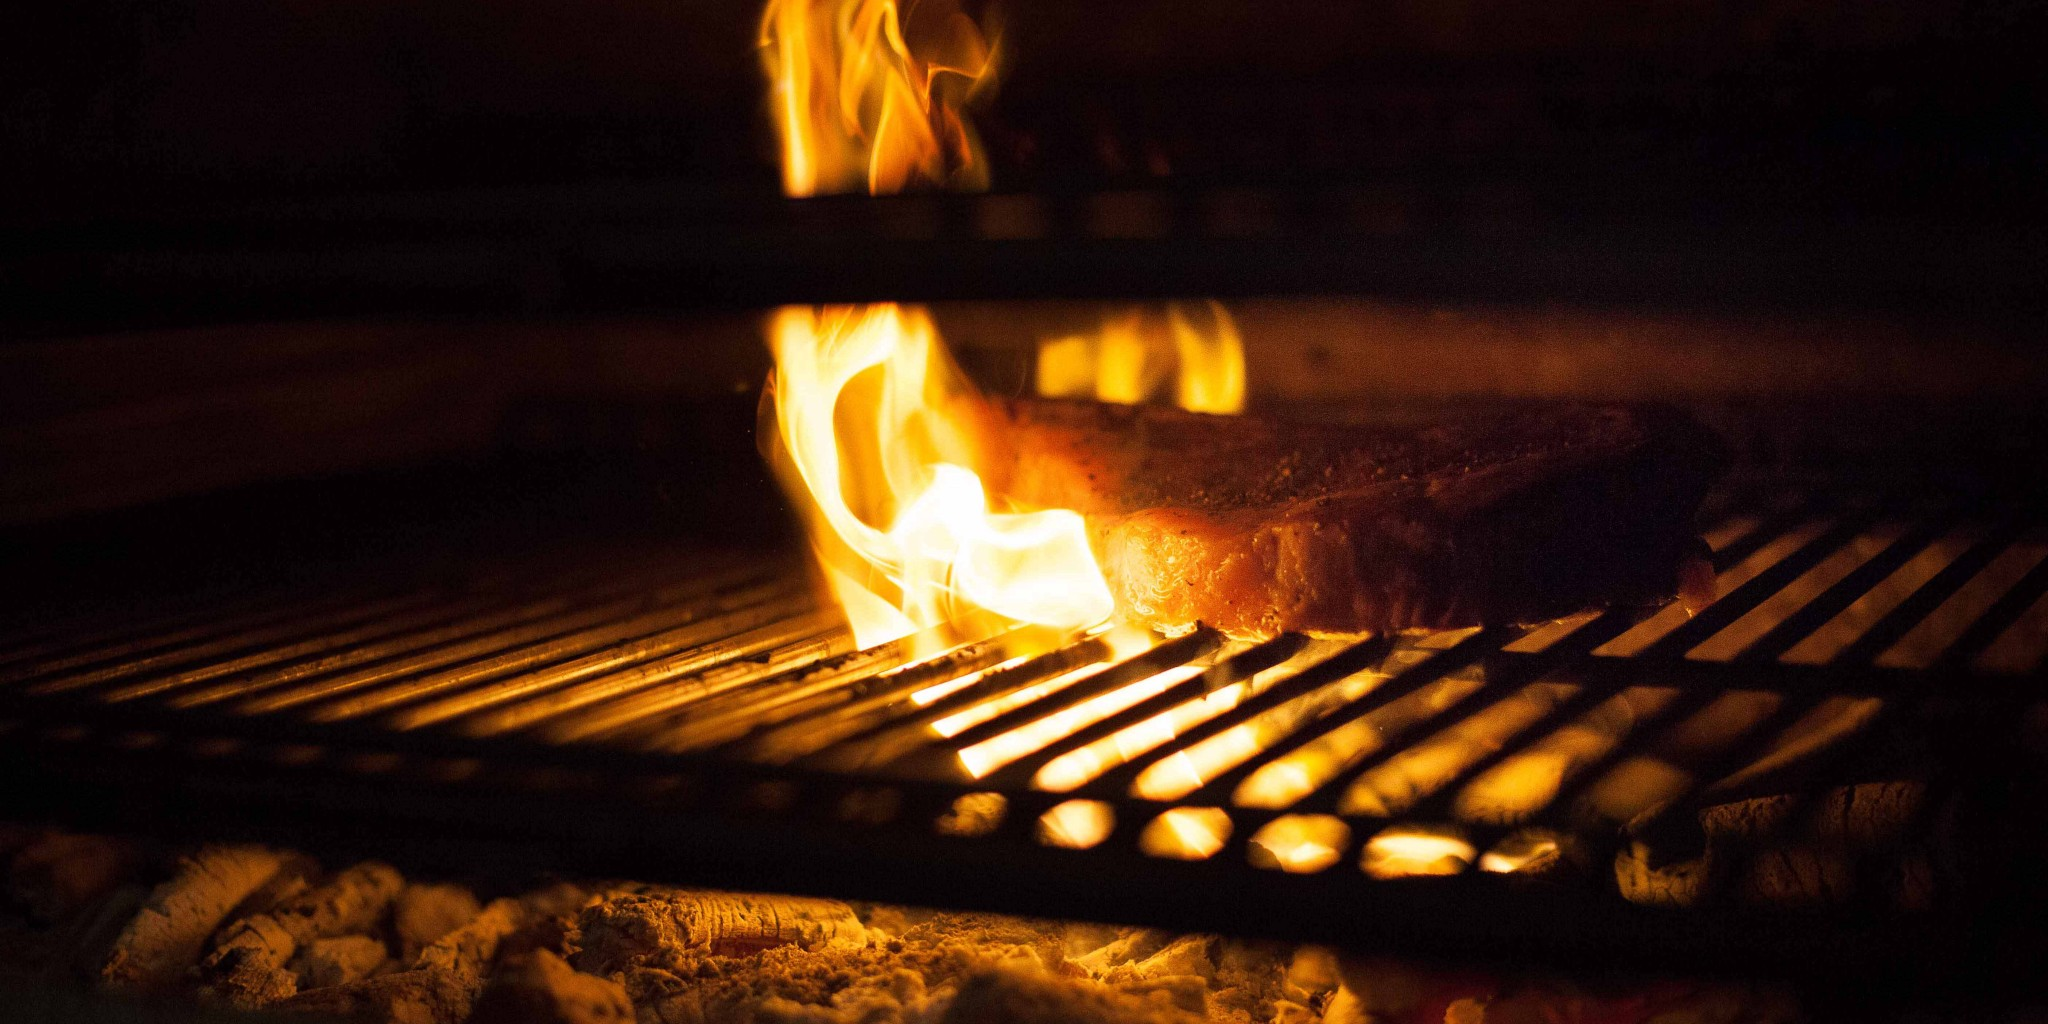 Introducing: 63Celsius's Josper Grill